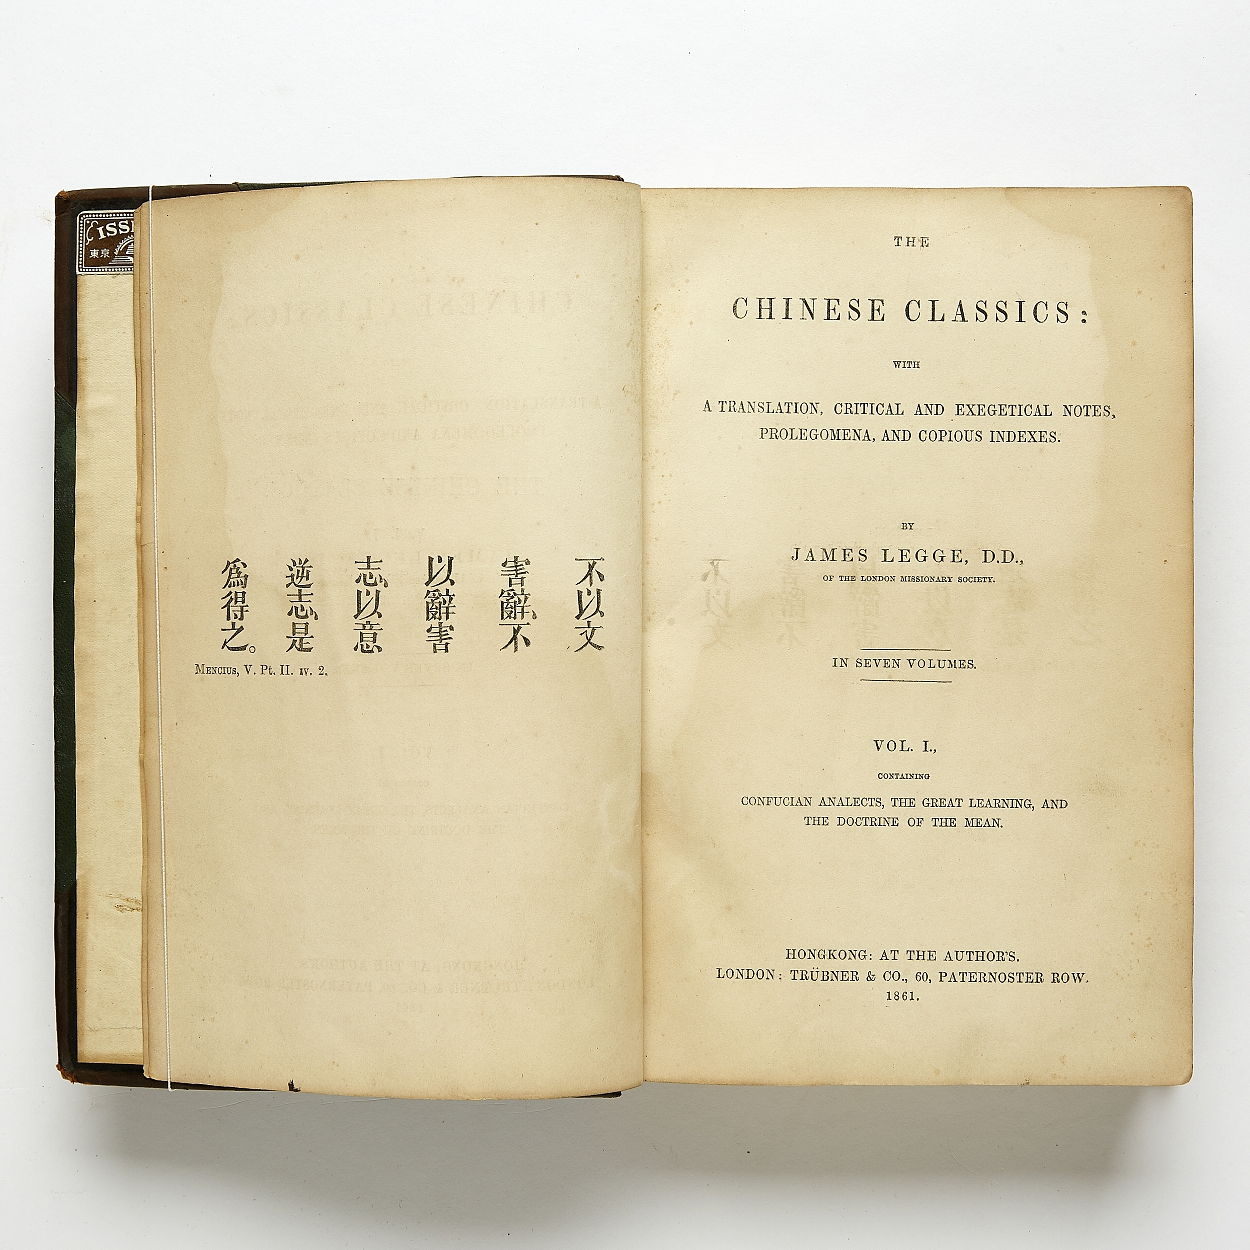 The Chinese Classics: Confucius (1861)